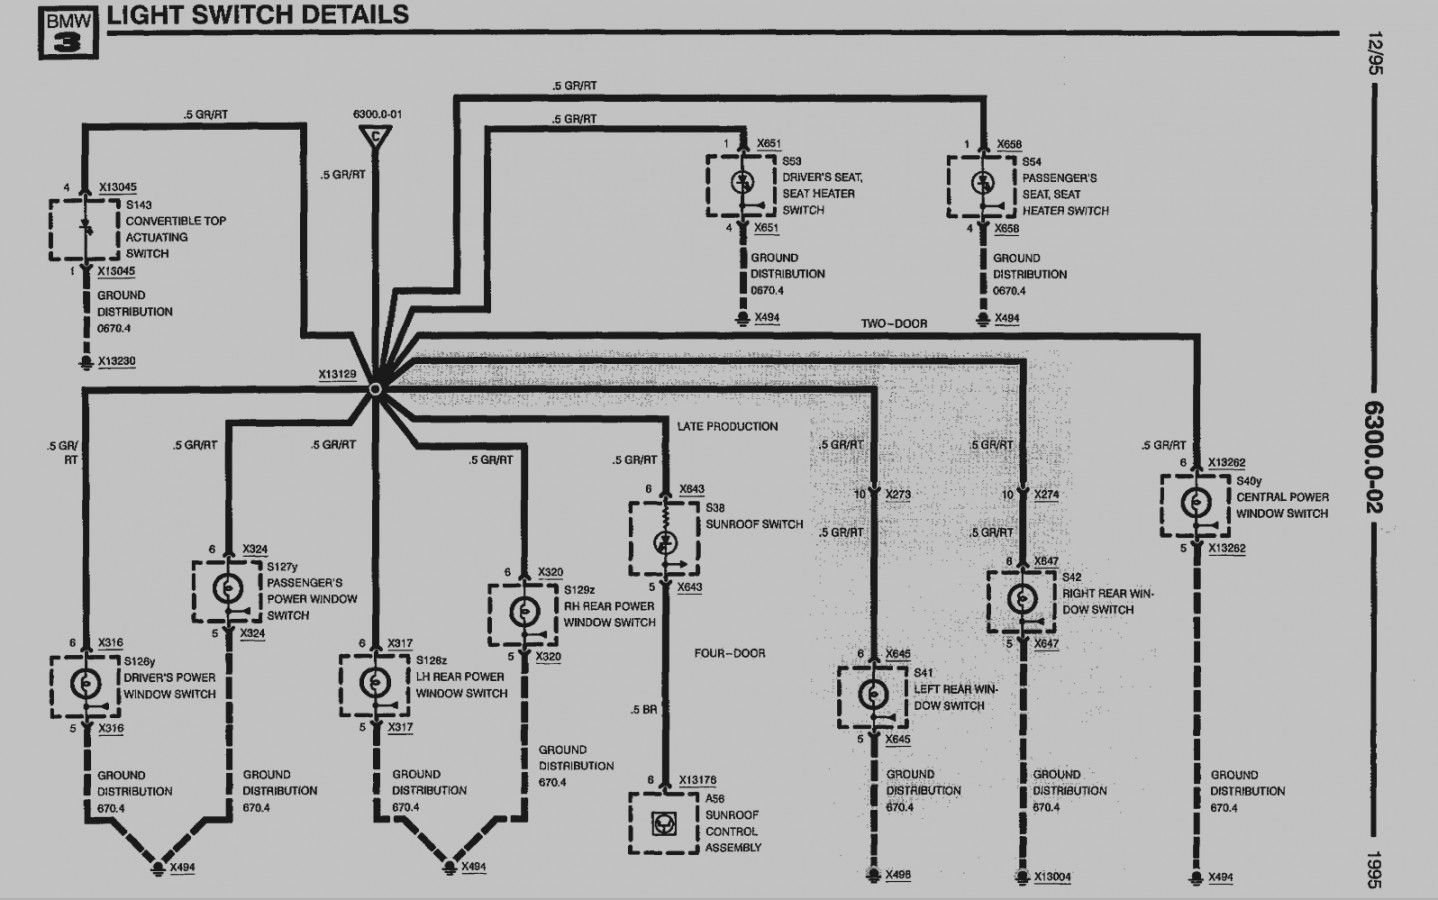 1998 Bmw Wiring Diagrams | Wiring Diagrams Bmw E Wiring Diagrams on bmw e30 wiring diagrams, bmw e90 wiring diagram, bmw schematic diagram, bmw e15 wiring diagrams, zonar accessory wiring diagrams, gravely wiring diagrams, bmw wiring harness diagram, bmw e46 air intake diagram, bmw e39 wiring diagrams, bmw e60 radio replacement kit, bmw 2002 wiring diagram pdf, mini cooper wiring diagrams, bmw x6 wiring diagrams, suzuki swift wiring diagrams, ab wiring diagrams, bmw e46 wiring diagrams, bmw z4 wiring-diagram, kenwood kdc 210u wiring diagrams, bmw 328i wiring diagrams, bmw e53 wiring diagrams,